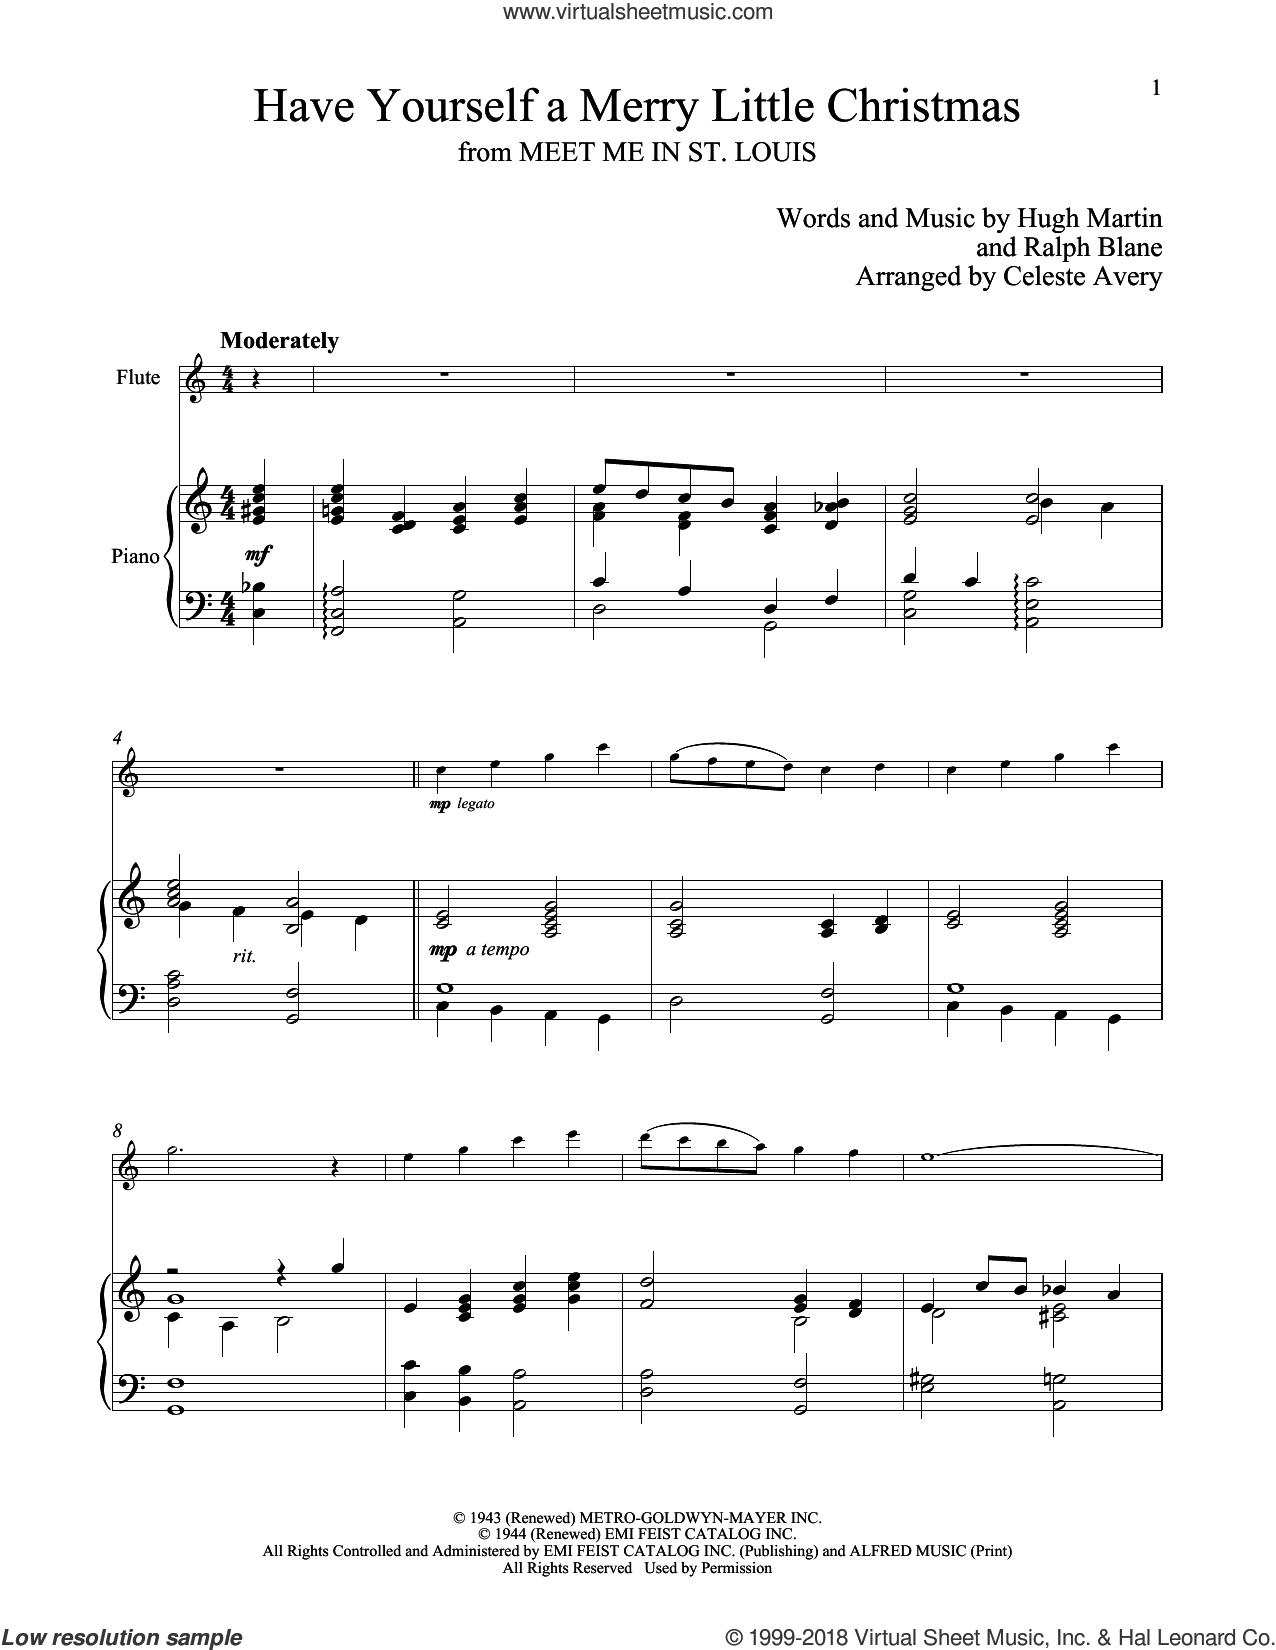 Have Yourself A Merry Little Christmas sheet music for flute and piano by Hugh Martin and Ralph Blane, classical score, intermediate skill level